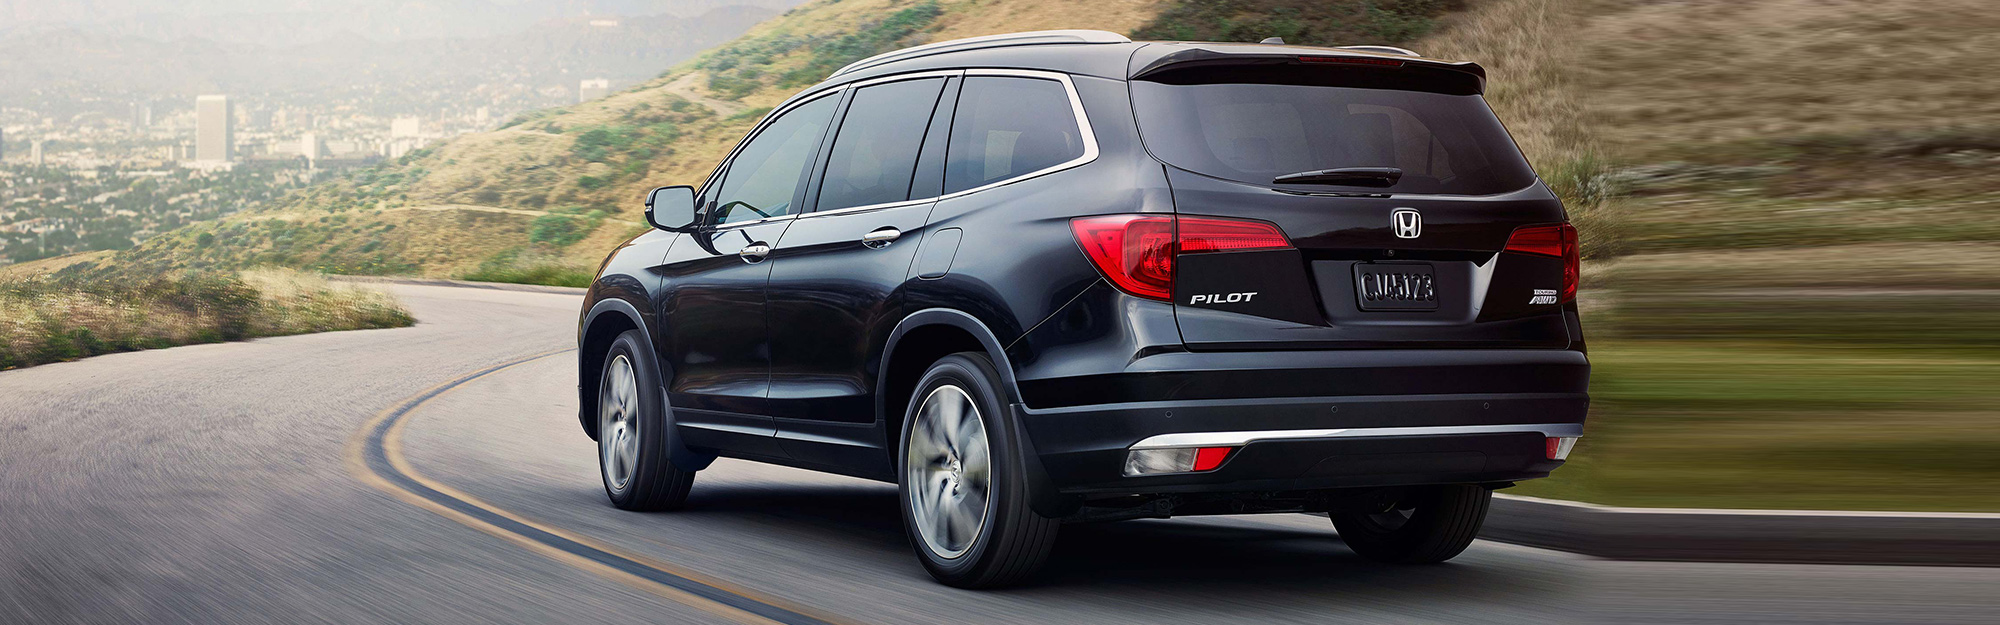 A black 2019 Honda Pilot drives down a country road toward the big city